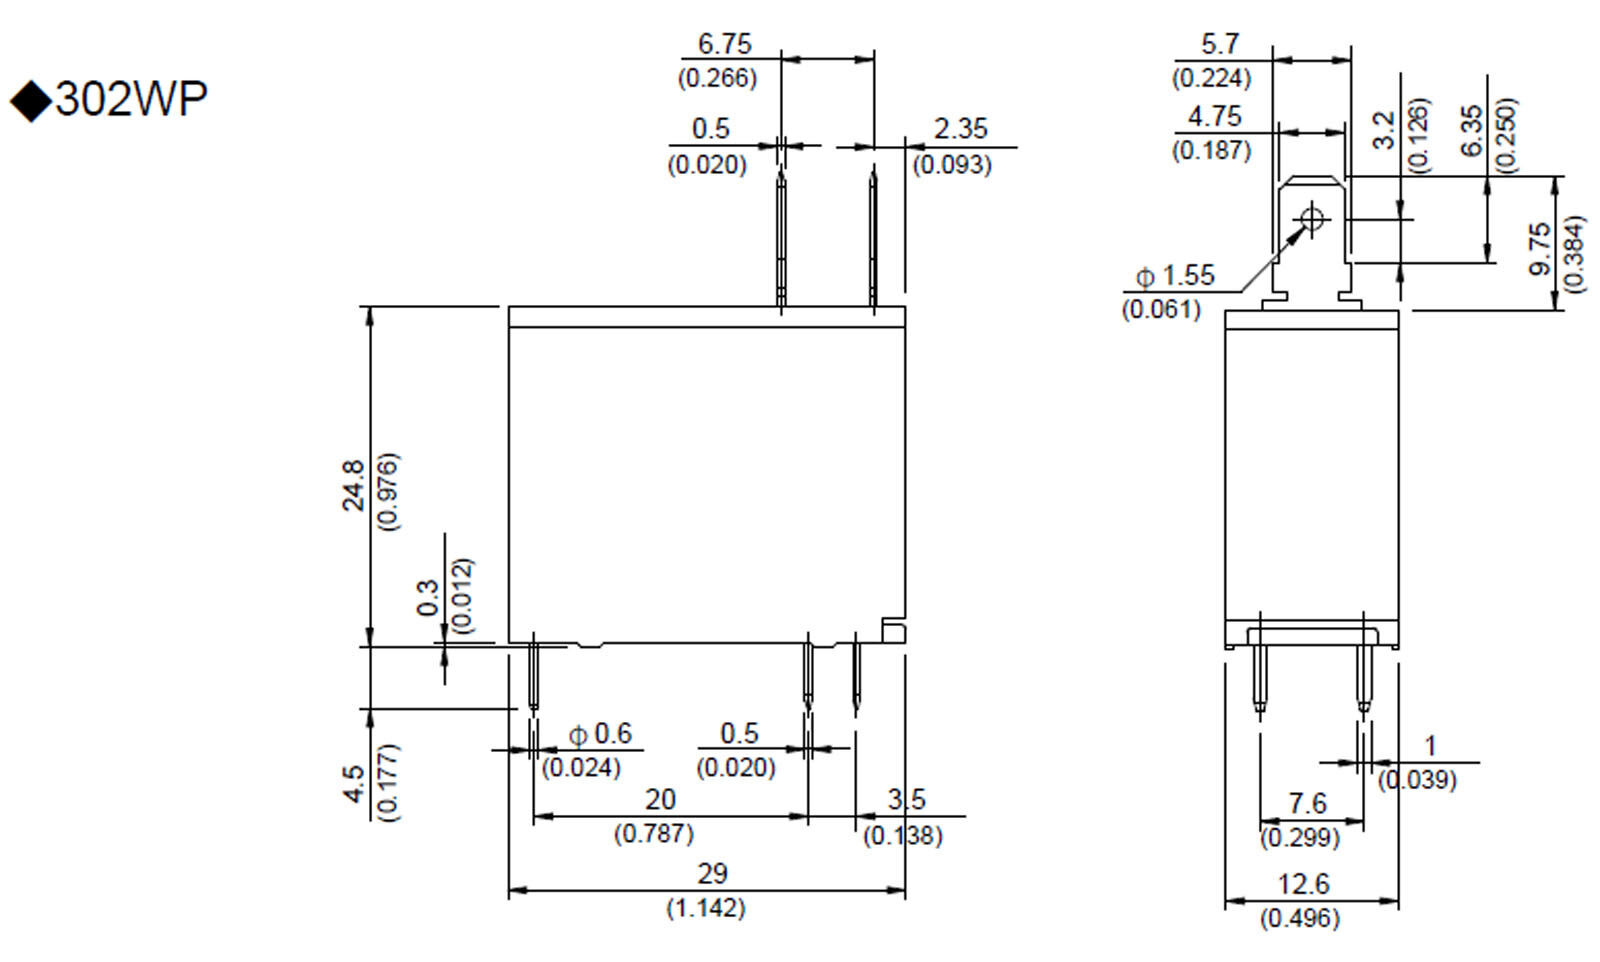 Idec Relay Wiring Diagram Free Picture Schematic Product Wiring Motor  Control Diagram Idec Relay Wiring Diagram Free Picture Schematic